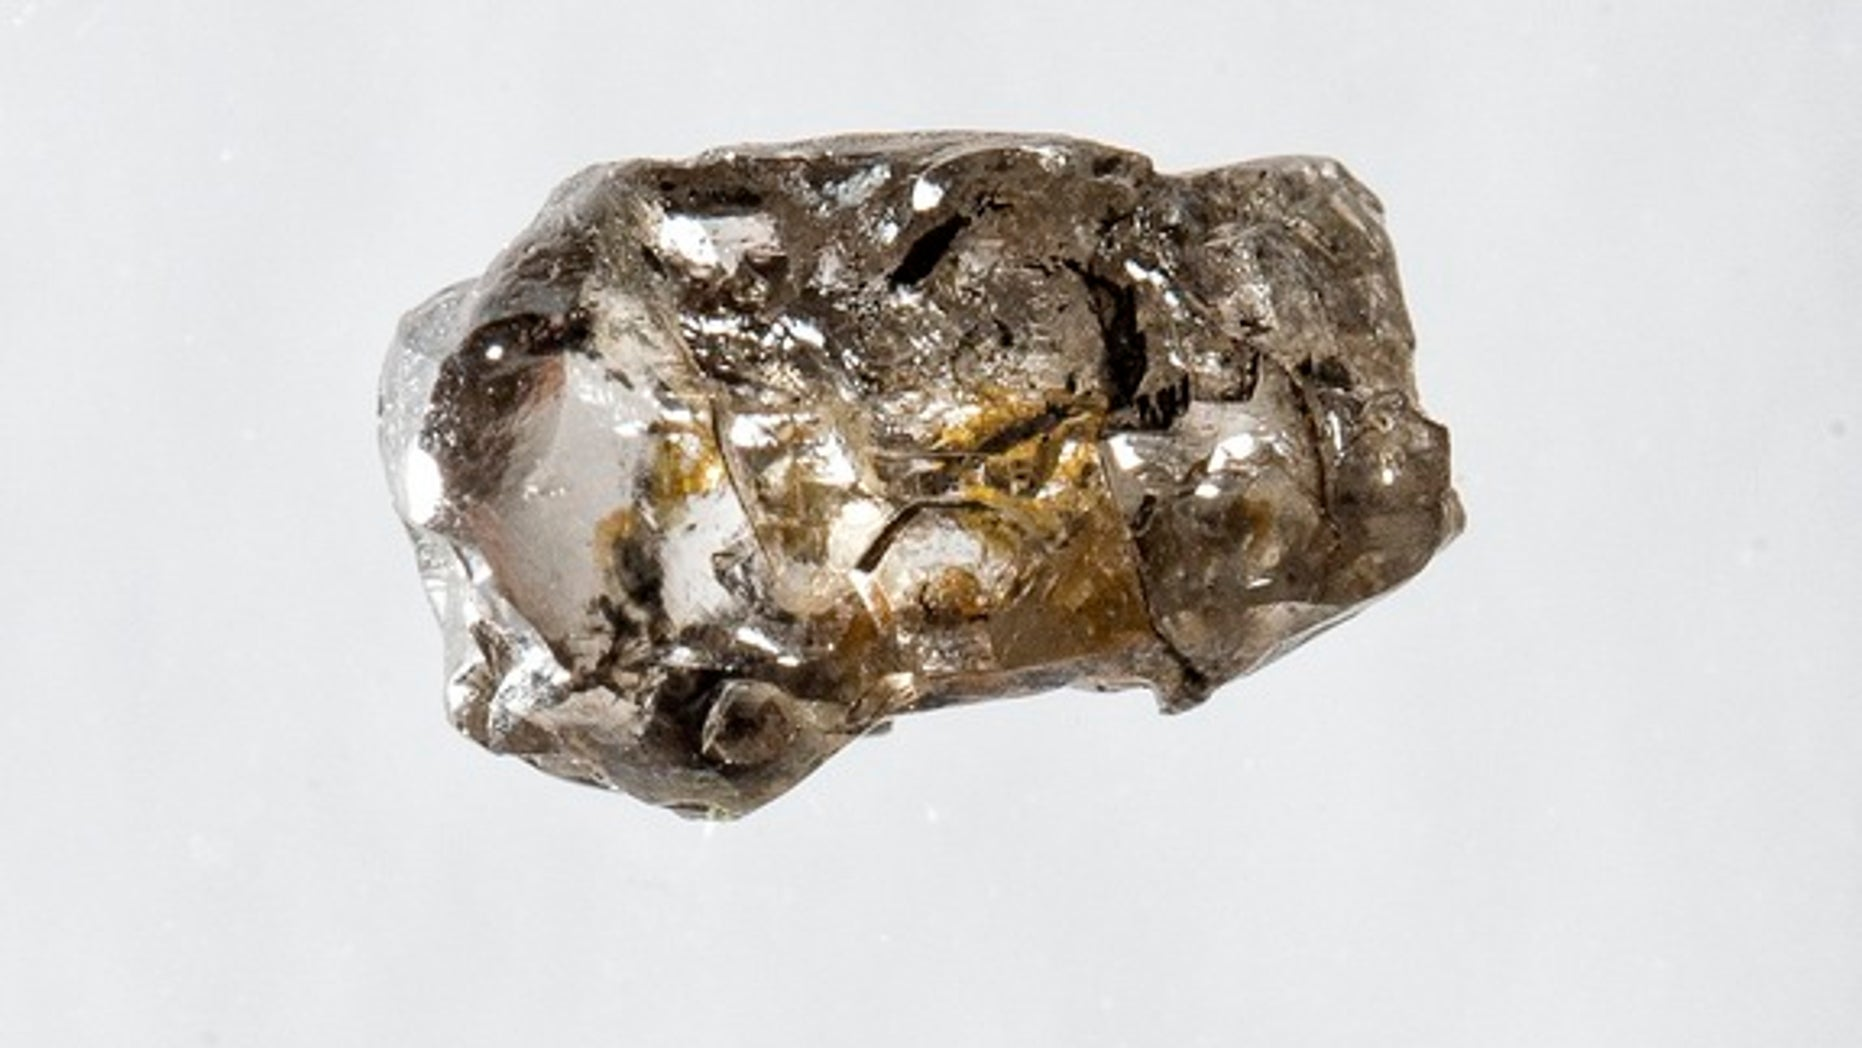 A diamond from Juína, Brazil, containing a water-rich inclusion of the olivine mineral ringwoodite.